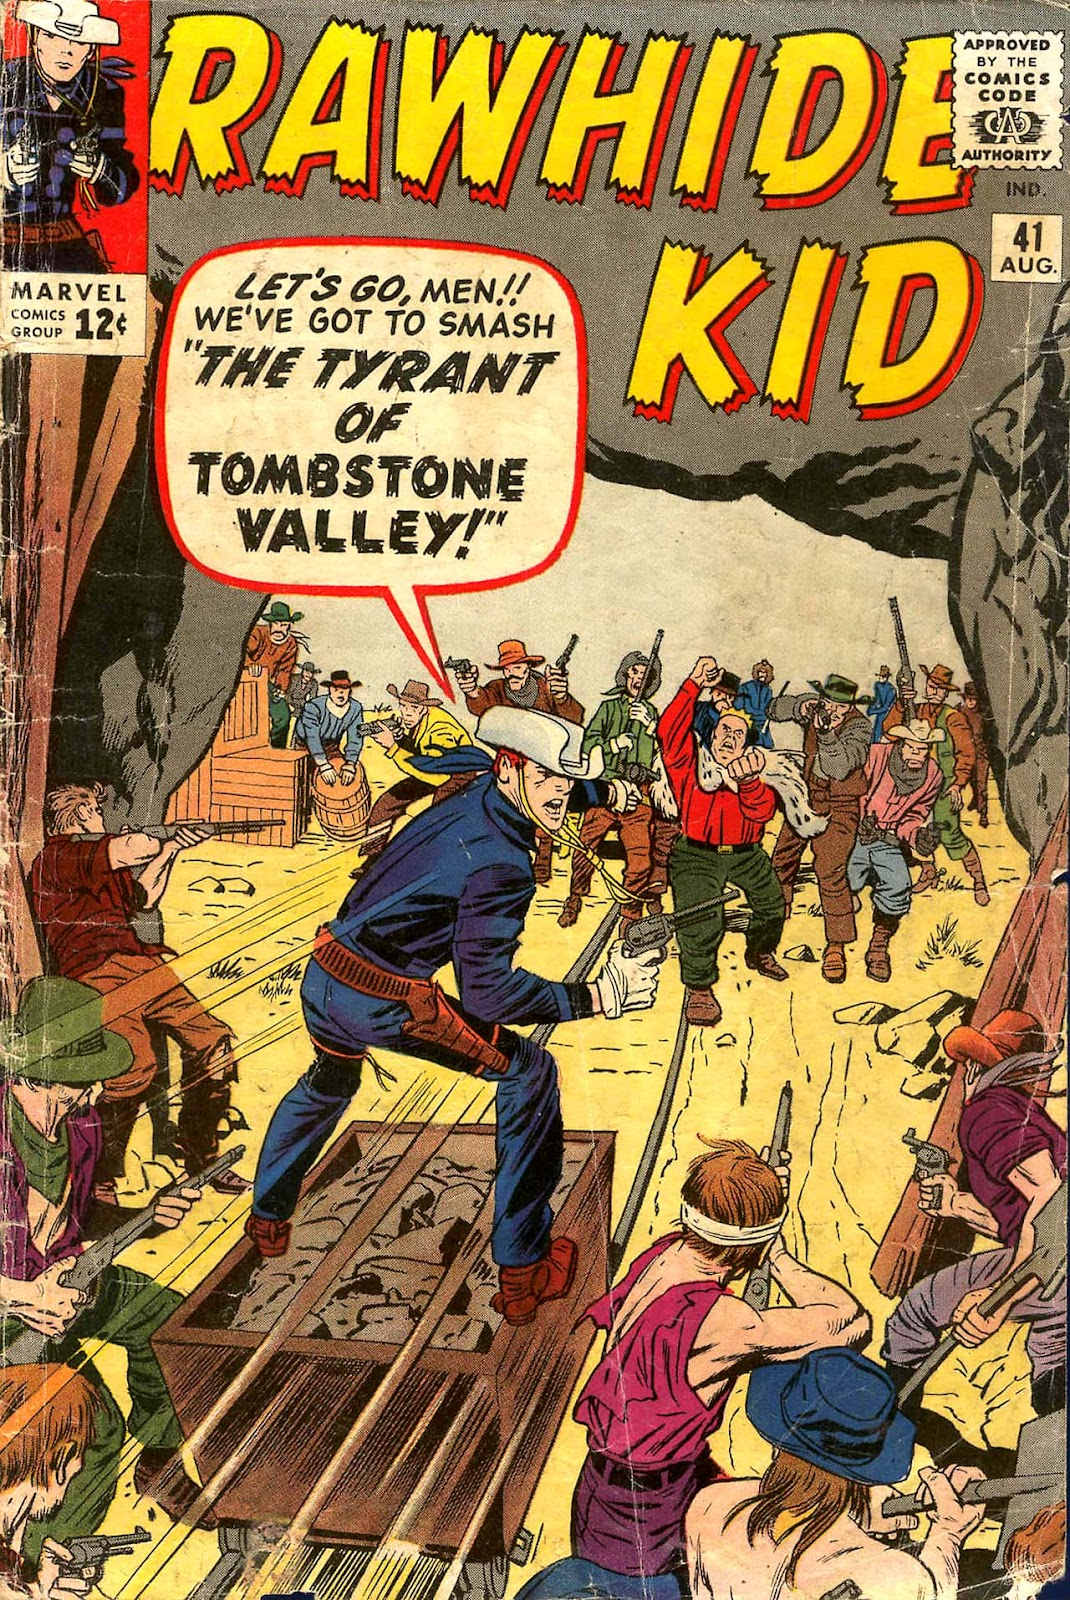 The Rawhide Kid (1955) issue 41 - Page 1